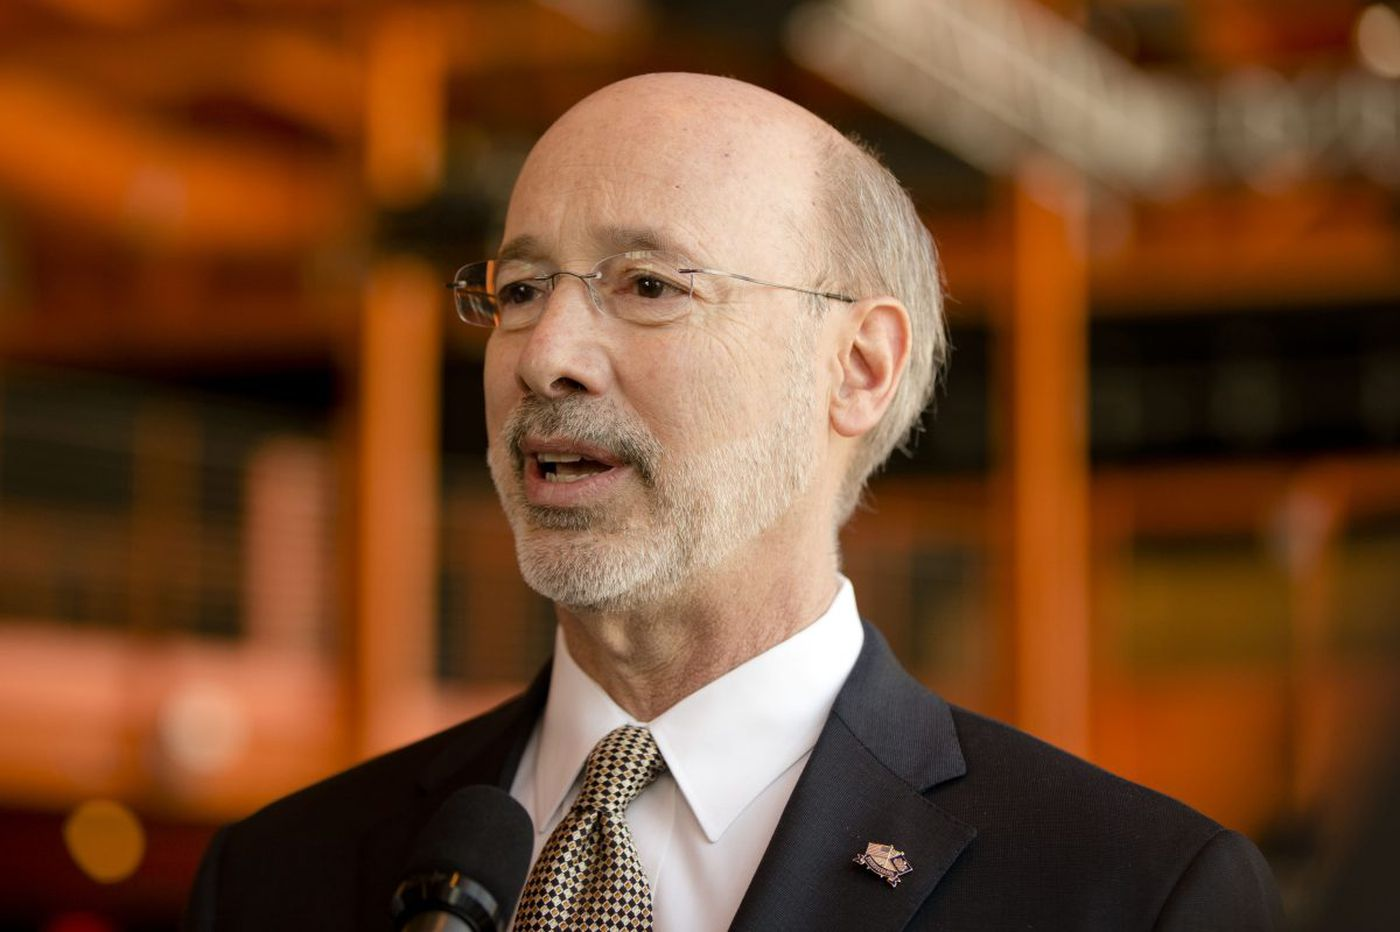 Abortion bill heads to Gov. Wolf for veto